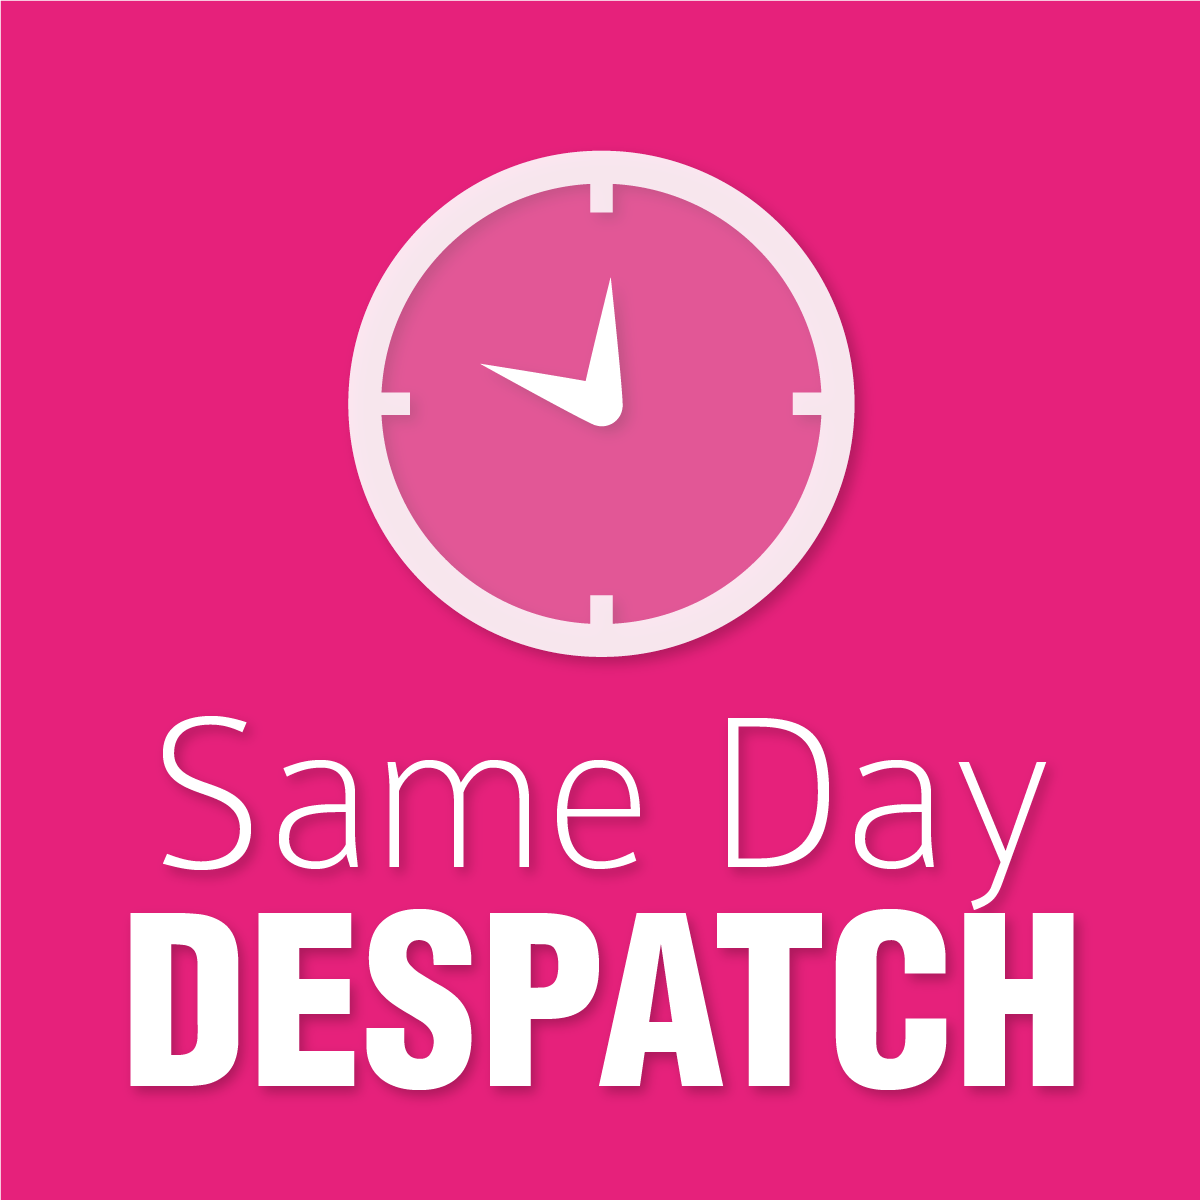 Same Day Despatch